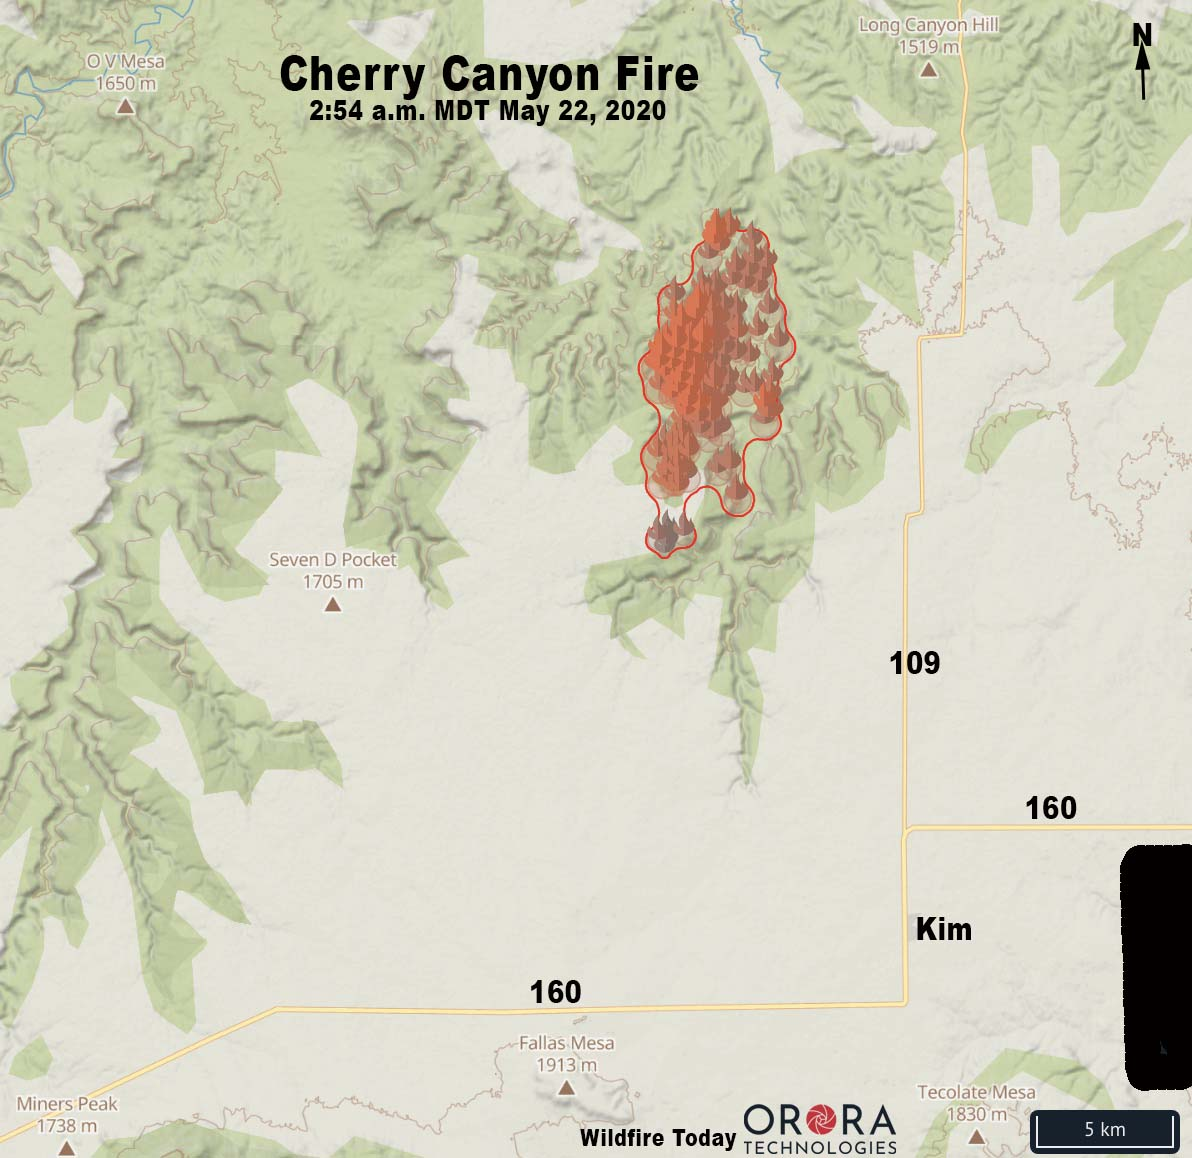 Map of the Cherry Canyon Fire